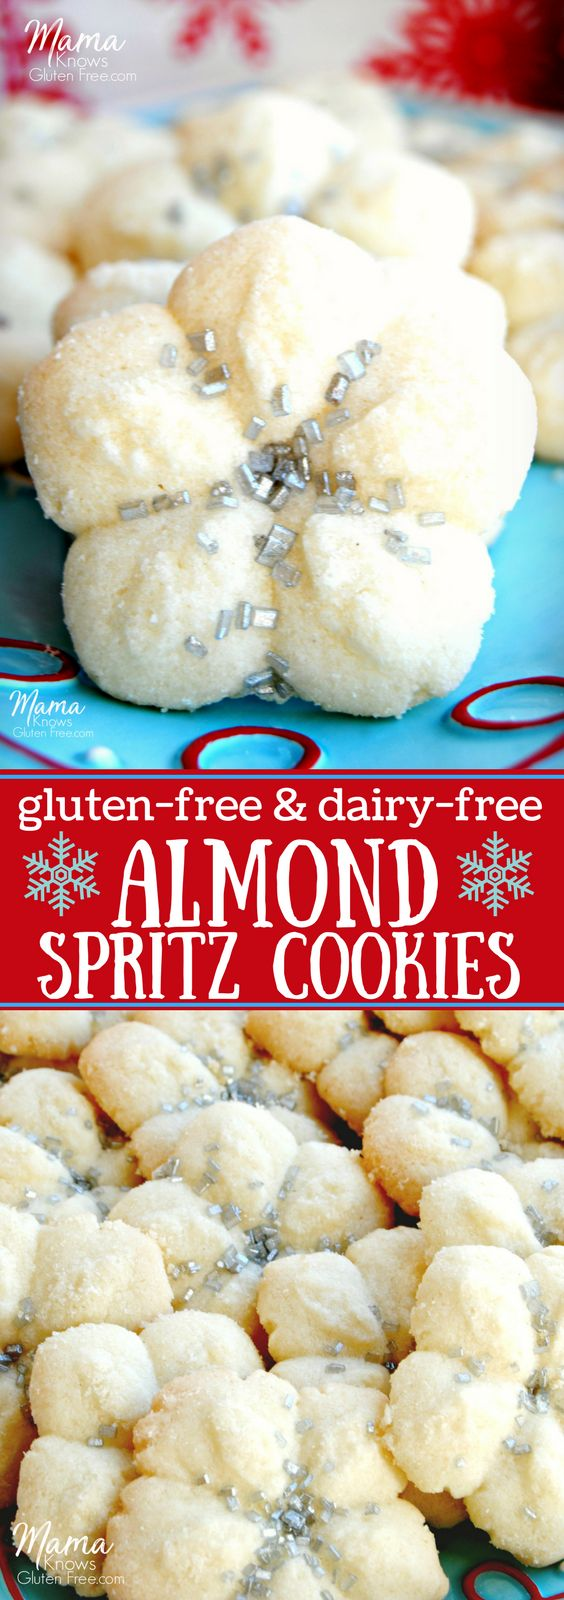 Almond spritz cookies are the perfect balance of a bit of almond and touch of sweetness. This holiday classic is now gluten-free and dairy-free.